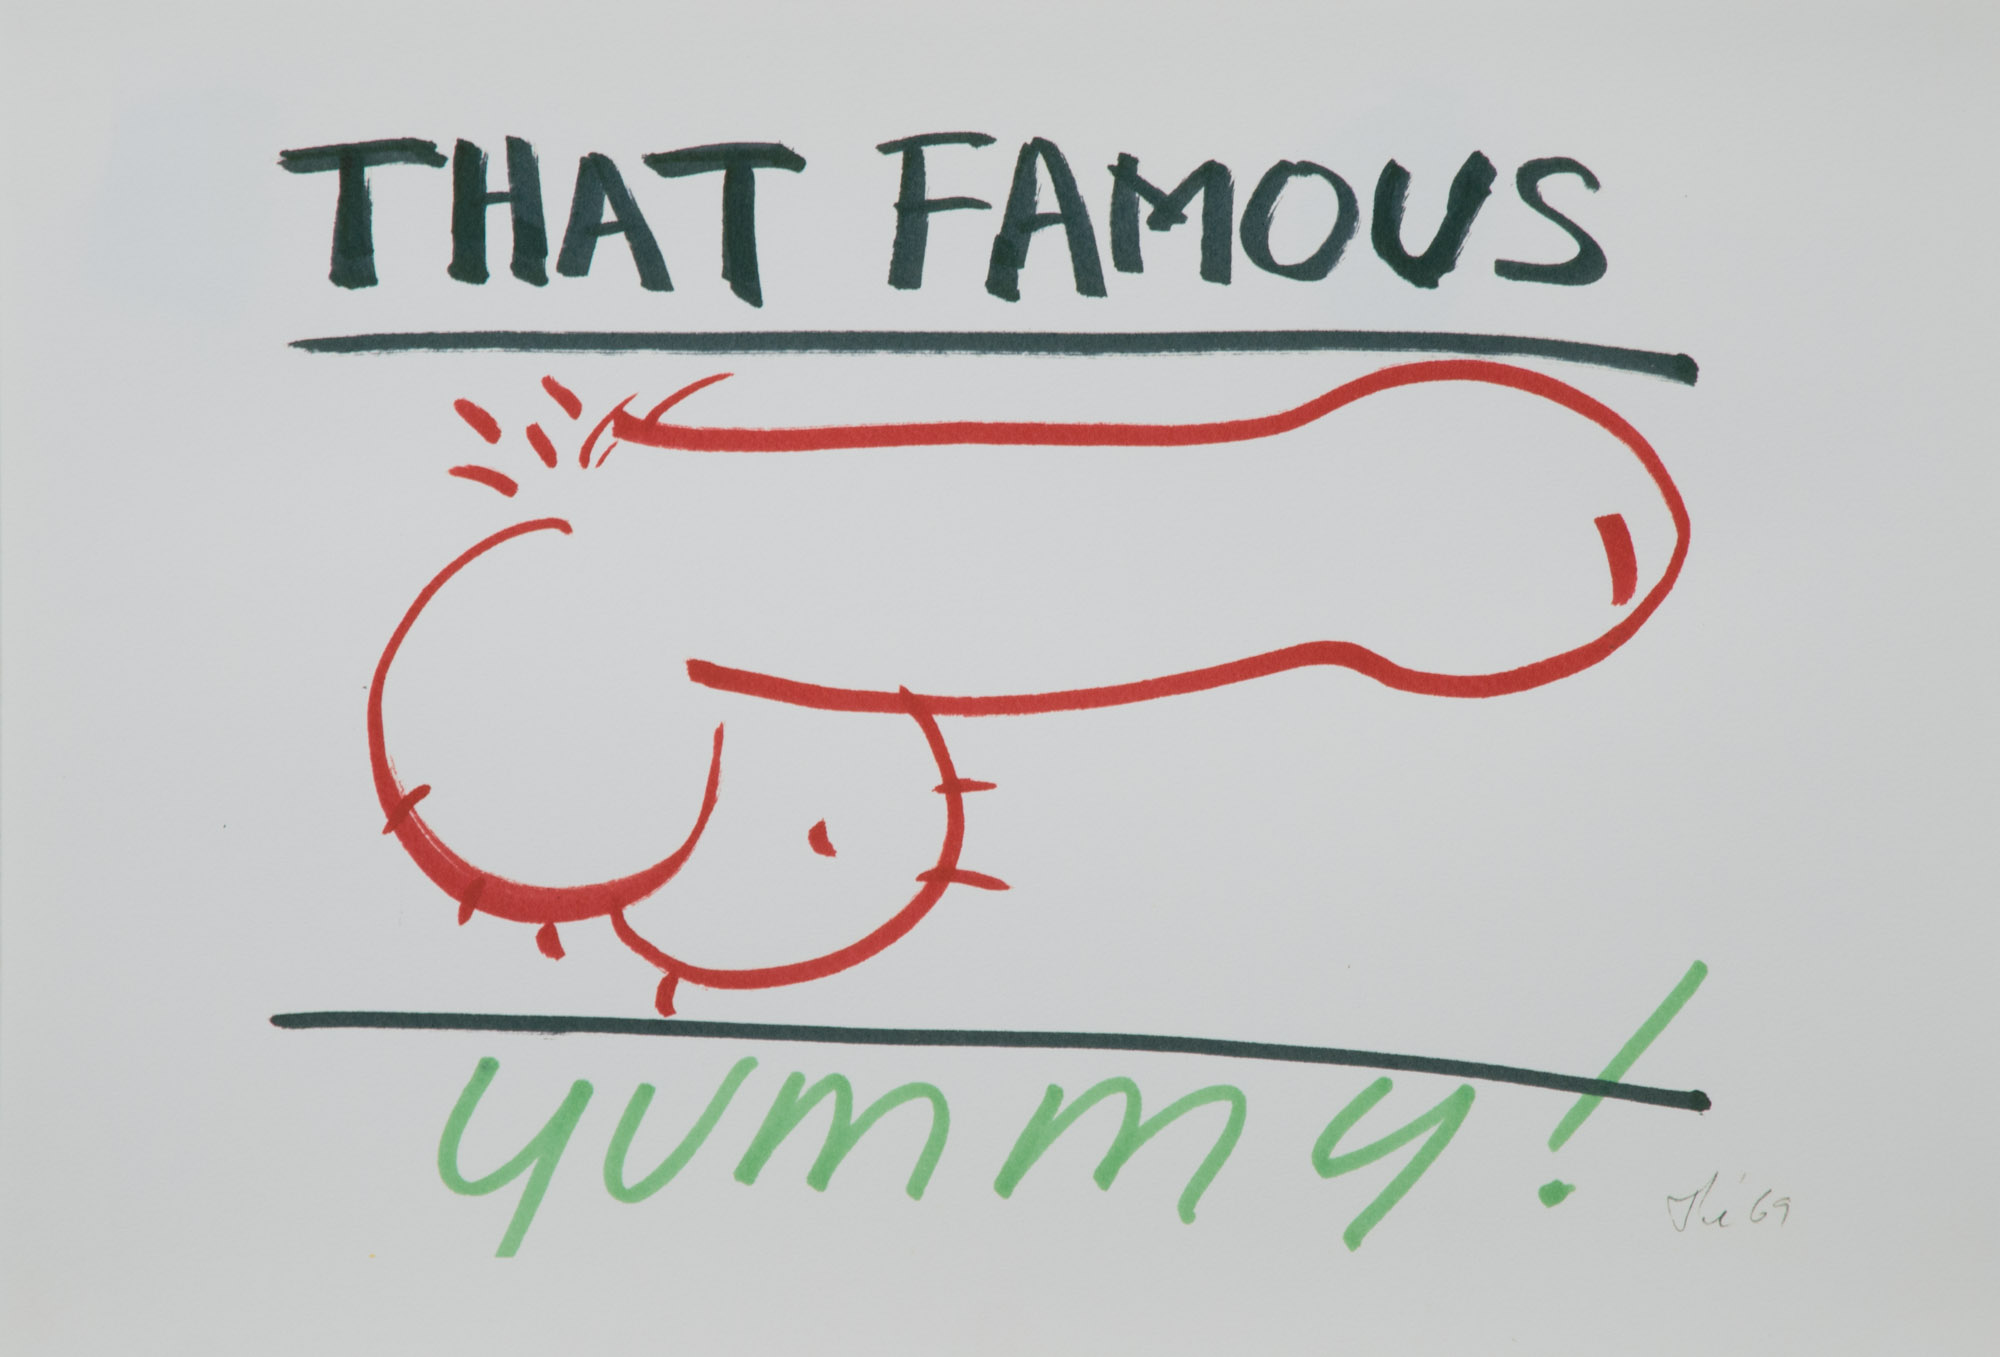 Theodore Titolo,  That Famous Yummy! , 1969, marker on paper, 13 x 18.5 in